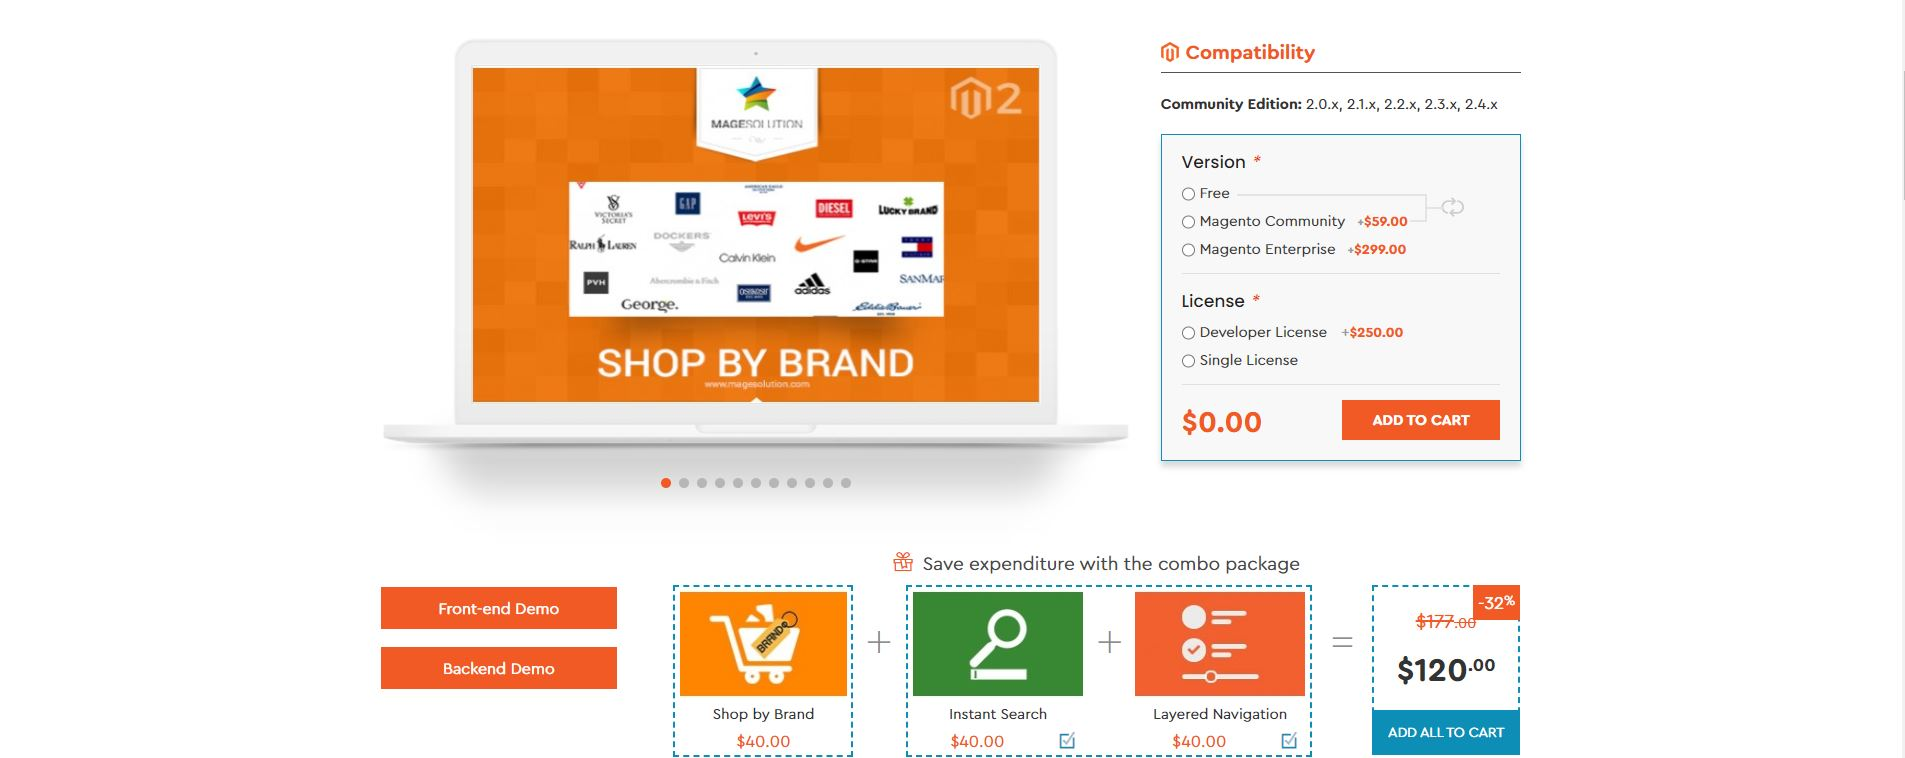 Shop By Brand by Magesolution